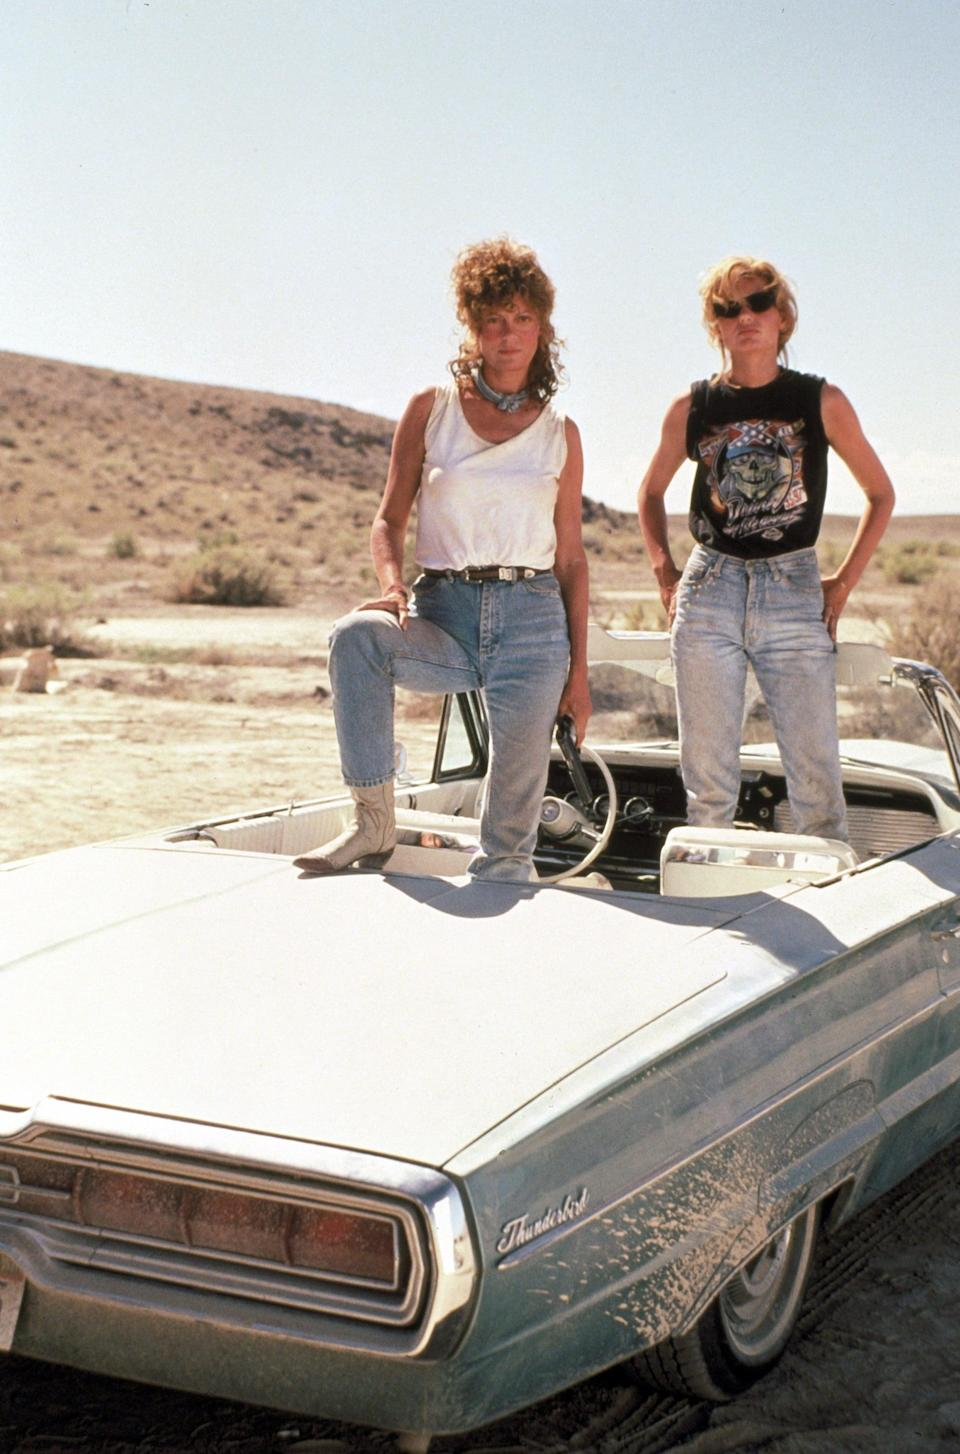 <ul> <li><strong>What to wear for Thelma:</strong> Sunglasses, light boot-cut jeans, and a graphic black tank top.</li> <li><strong>What to wear for Louise:</strong> Blue jeans, a white tank top, and a cowboy hat with a handkerchief tied around your neck. Get dusty.</li> </ul>